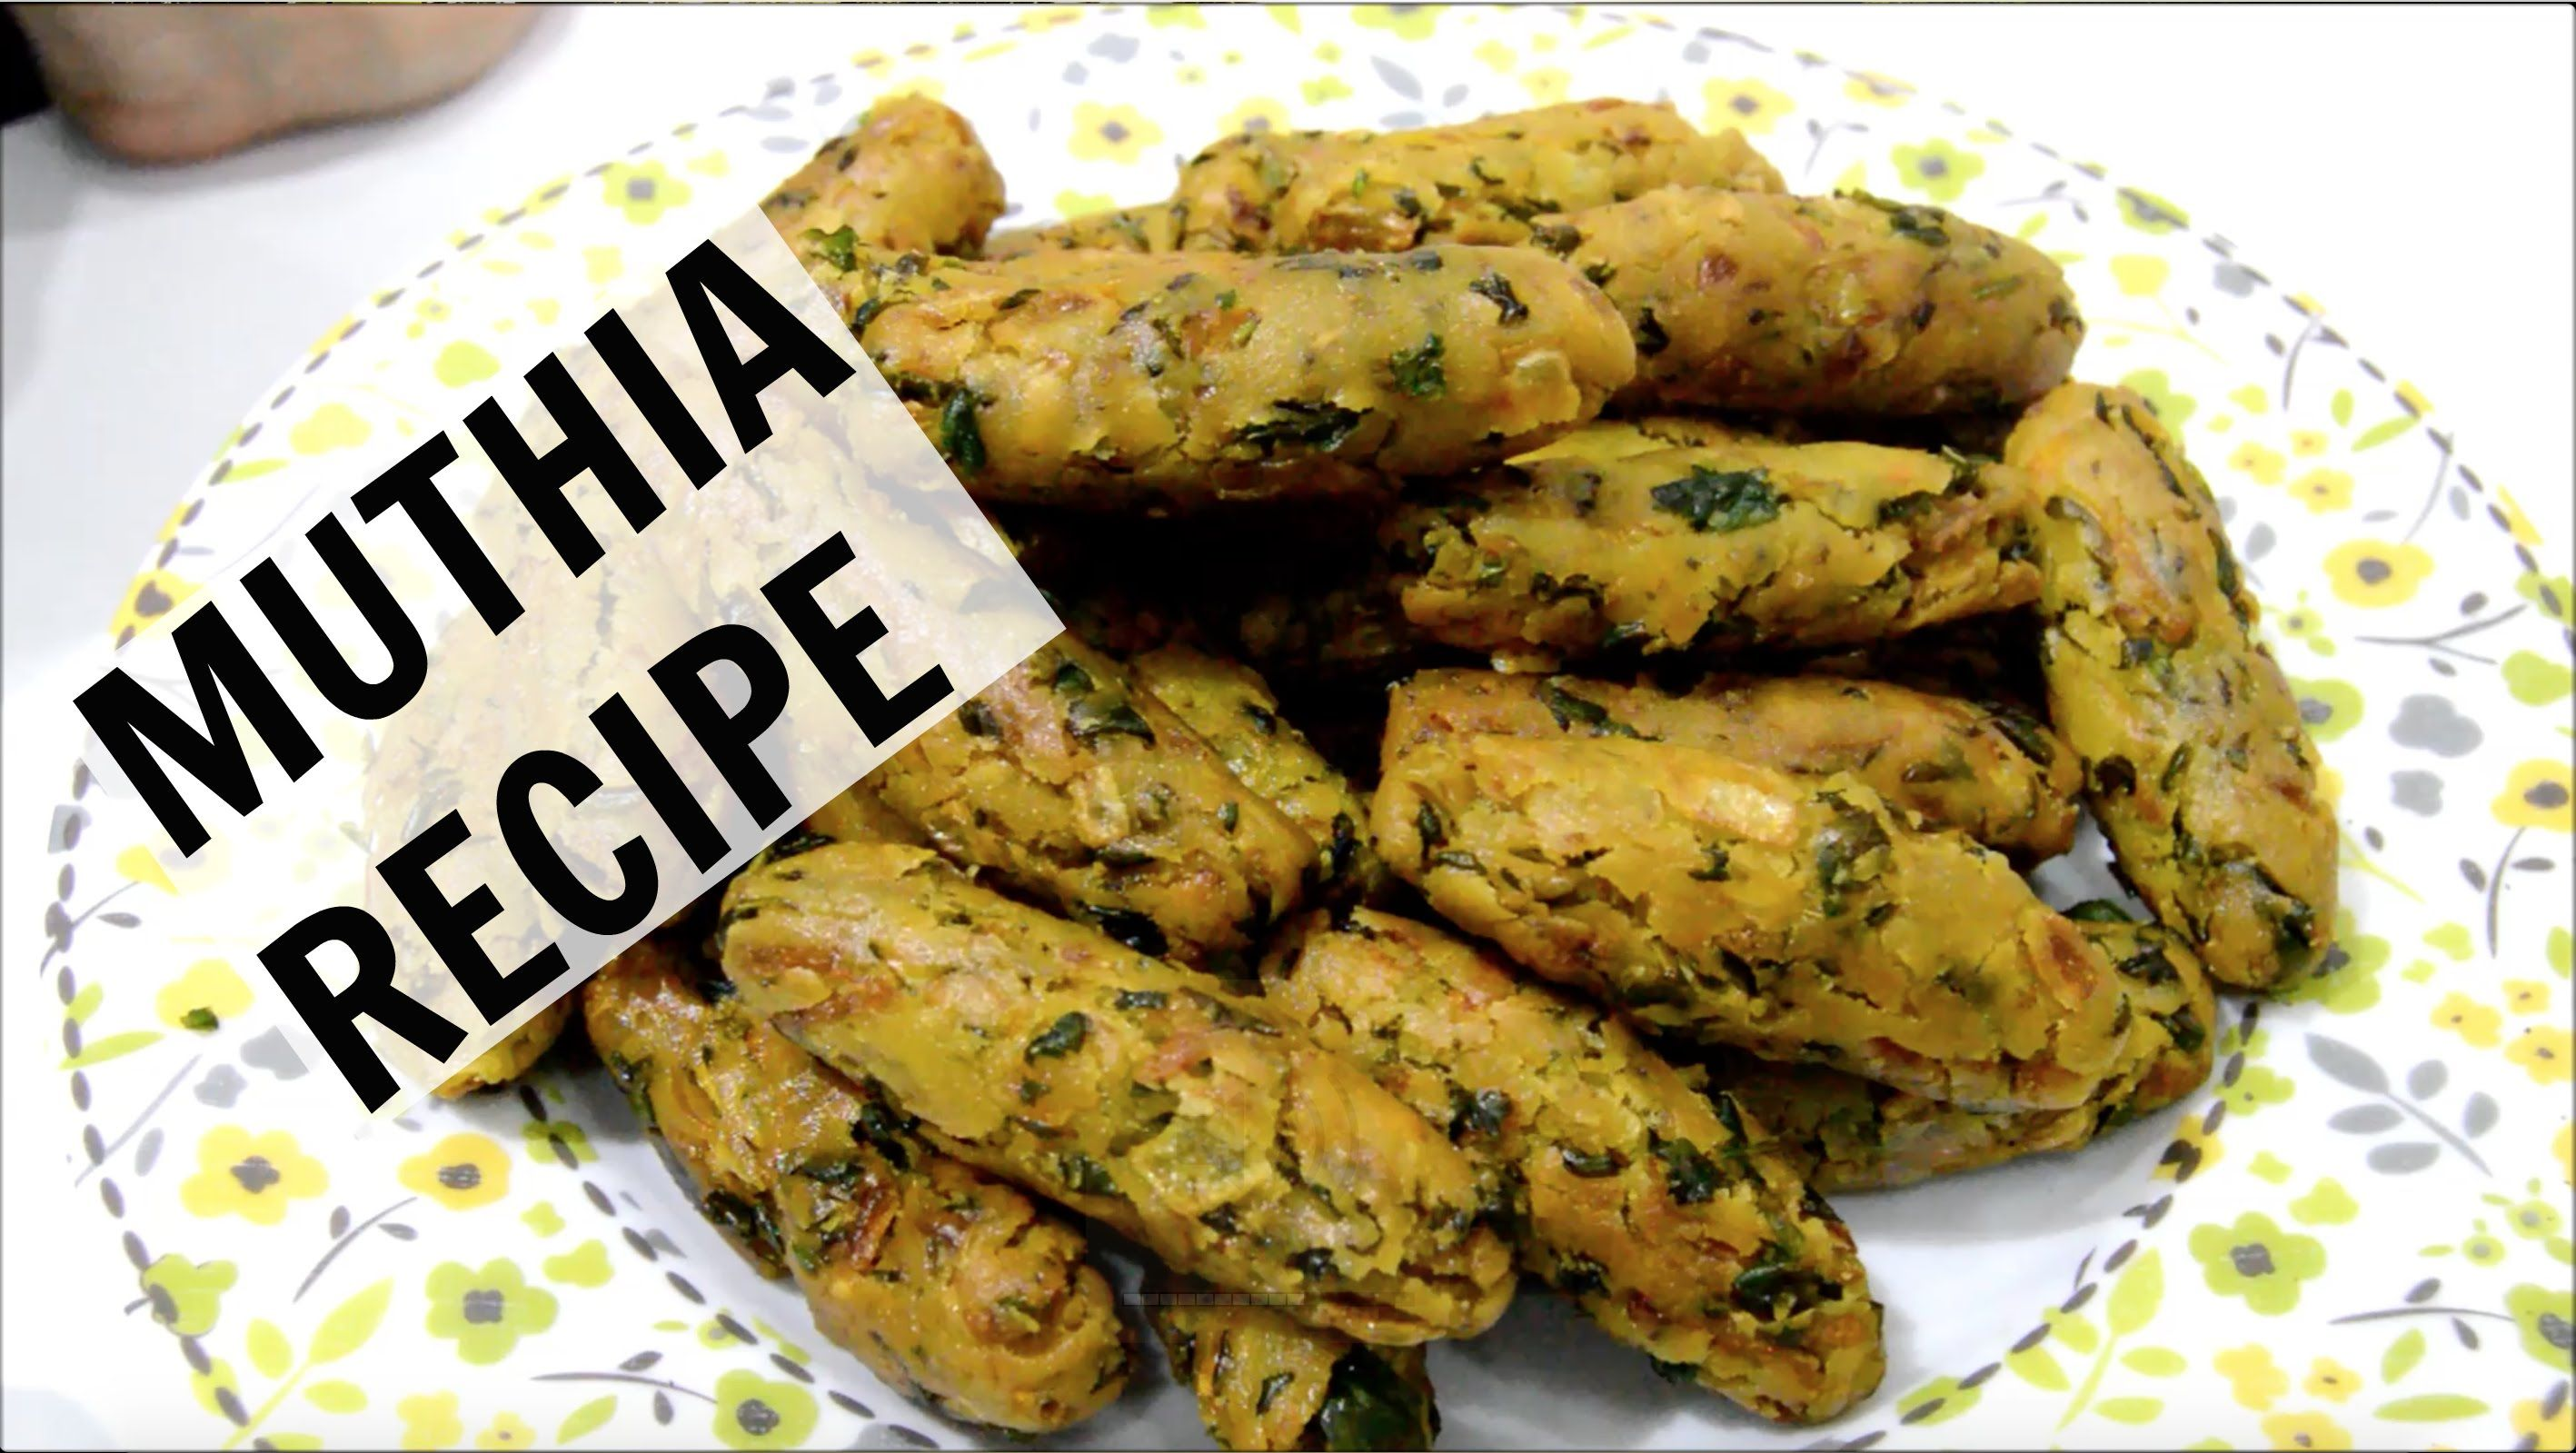 News videos more muthia recipe indian cooking recipes cook news videos more muthia recipe indian cooking recipes cook with anisa muthiya fenugreek leaves dumplings amazing cooking videos music videos forumfinder Image collections